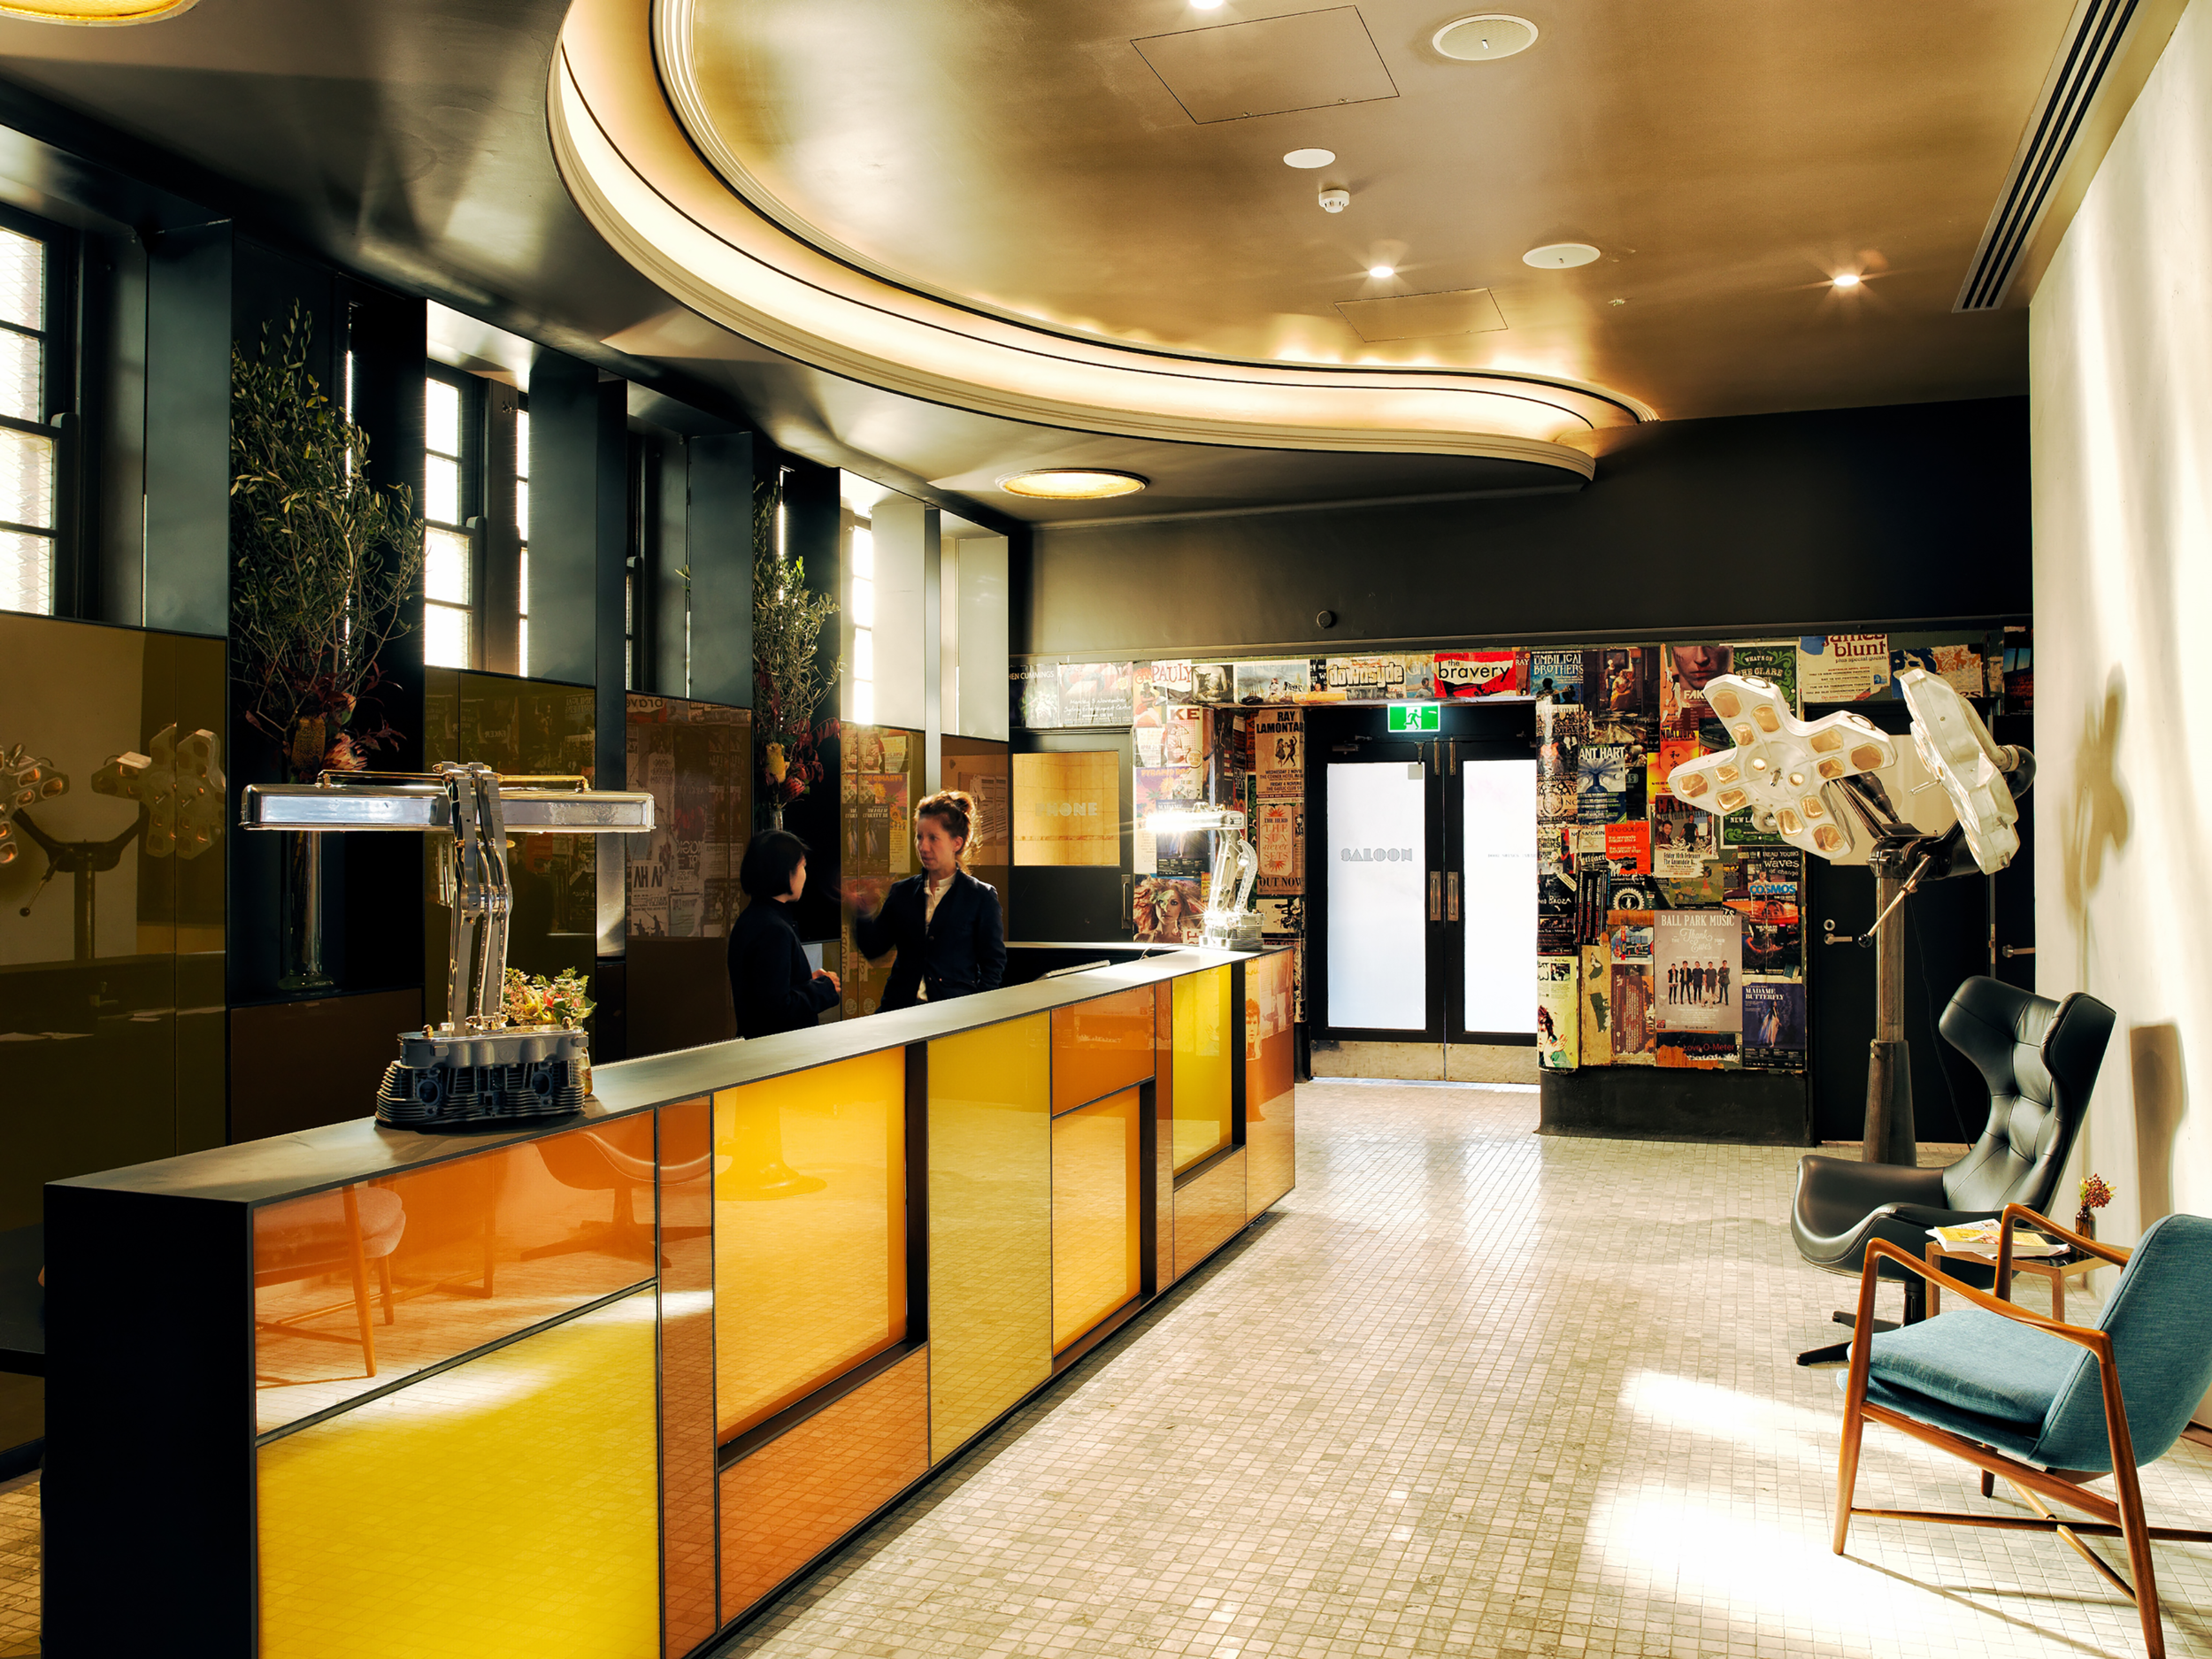 TOCH_Reception Foyer 3 (4000x3000).png